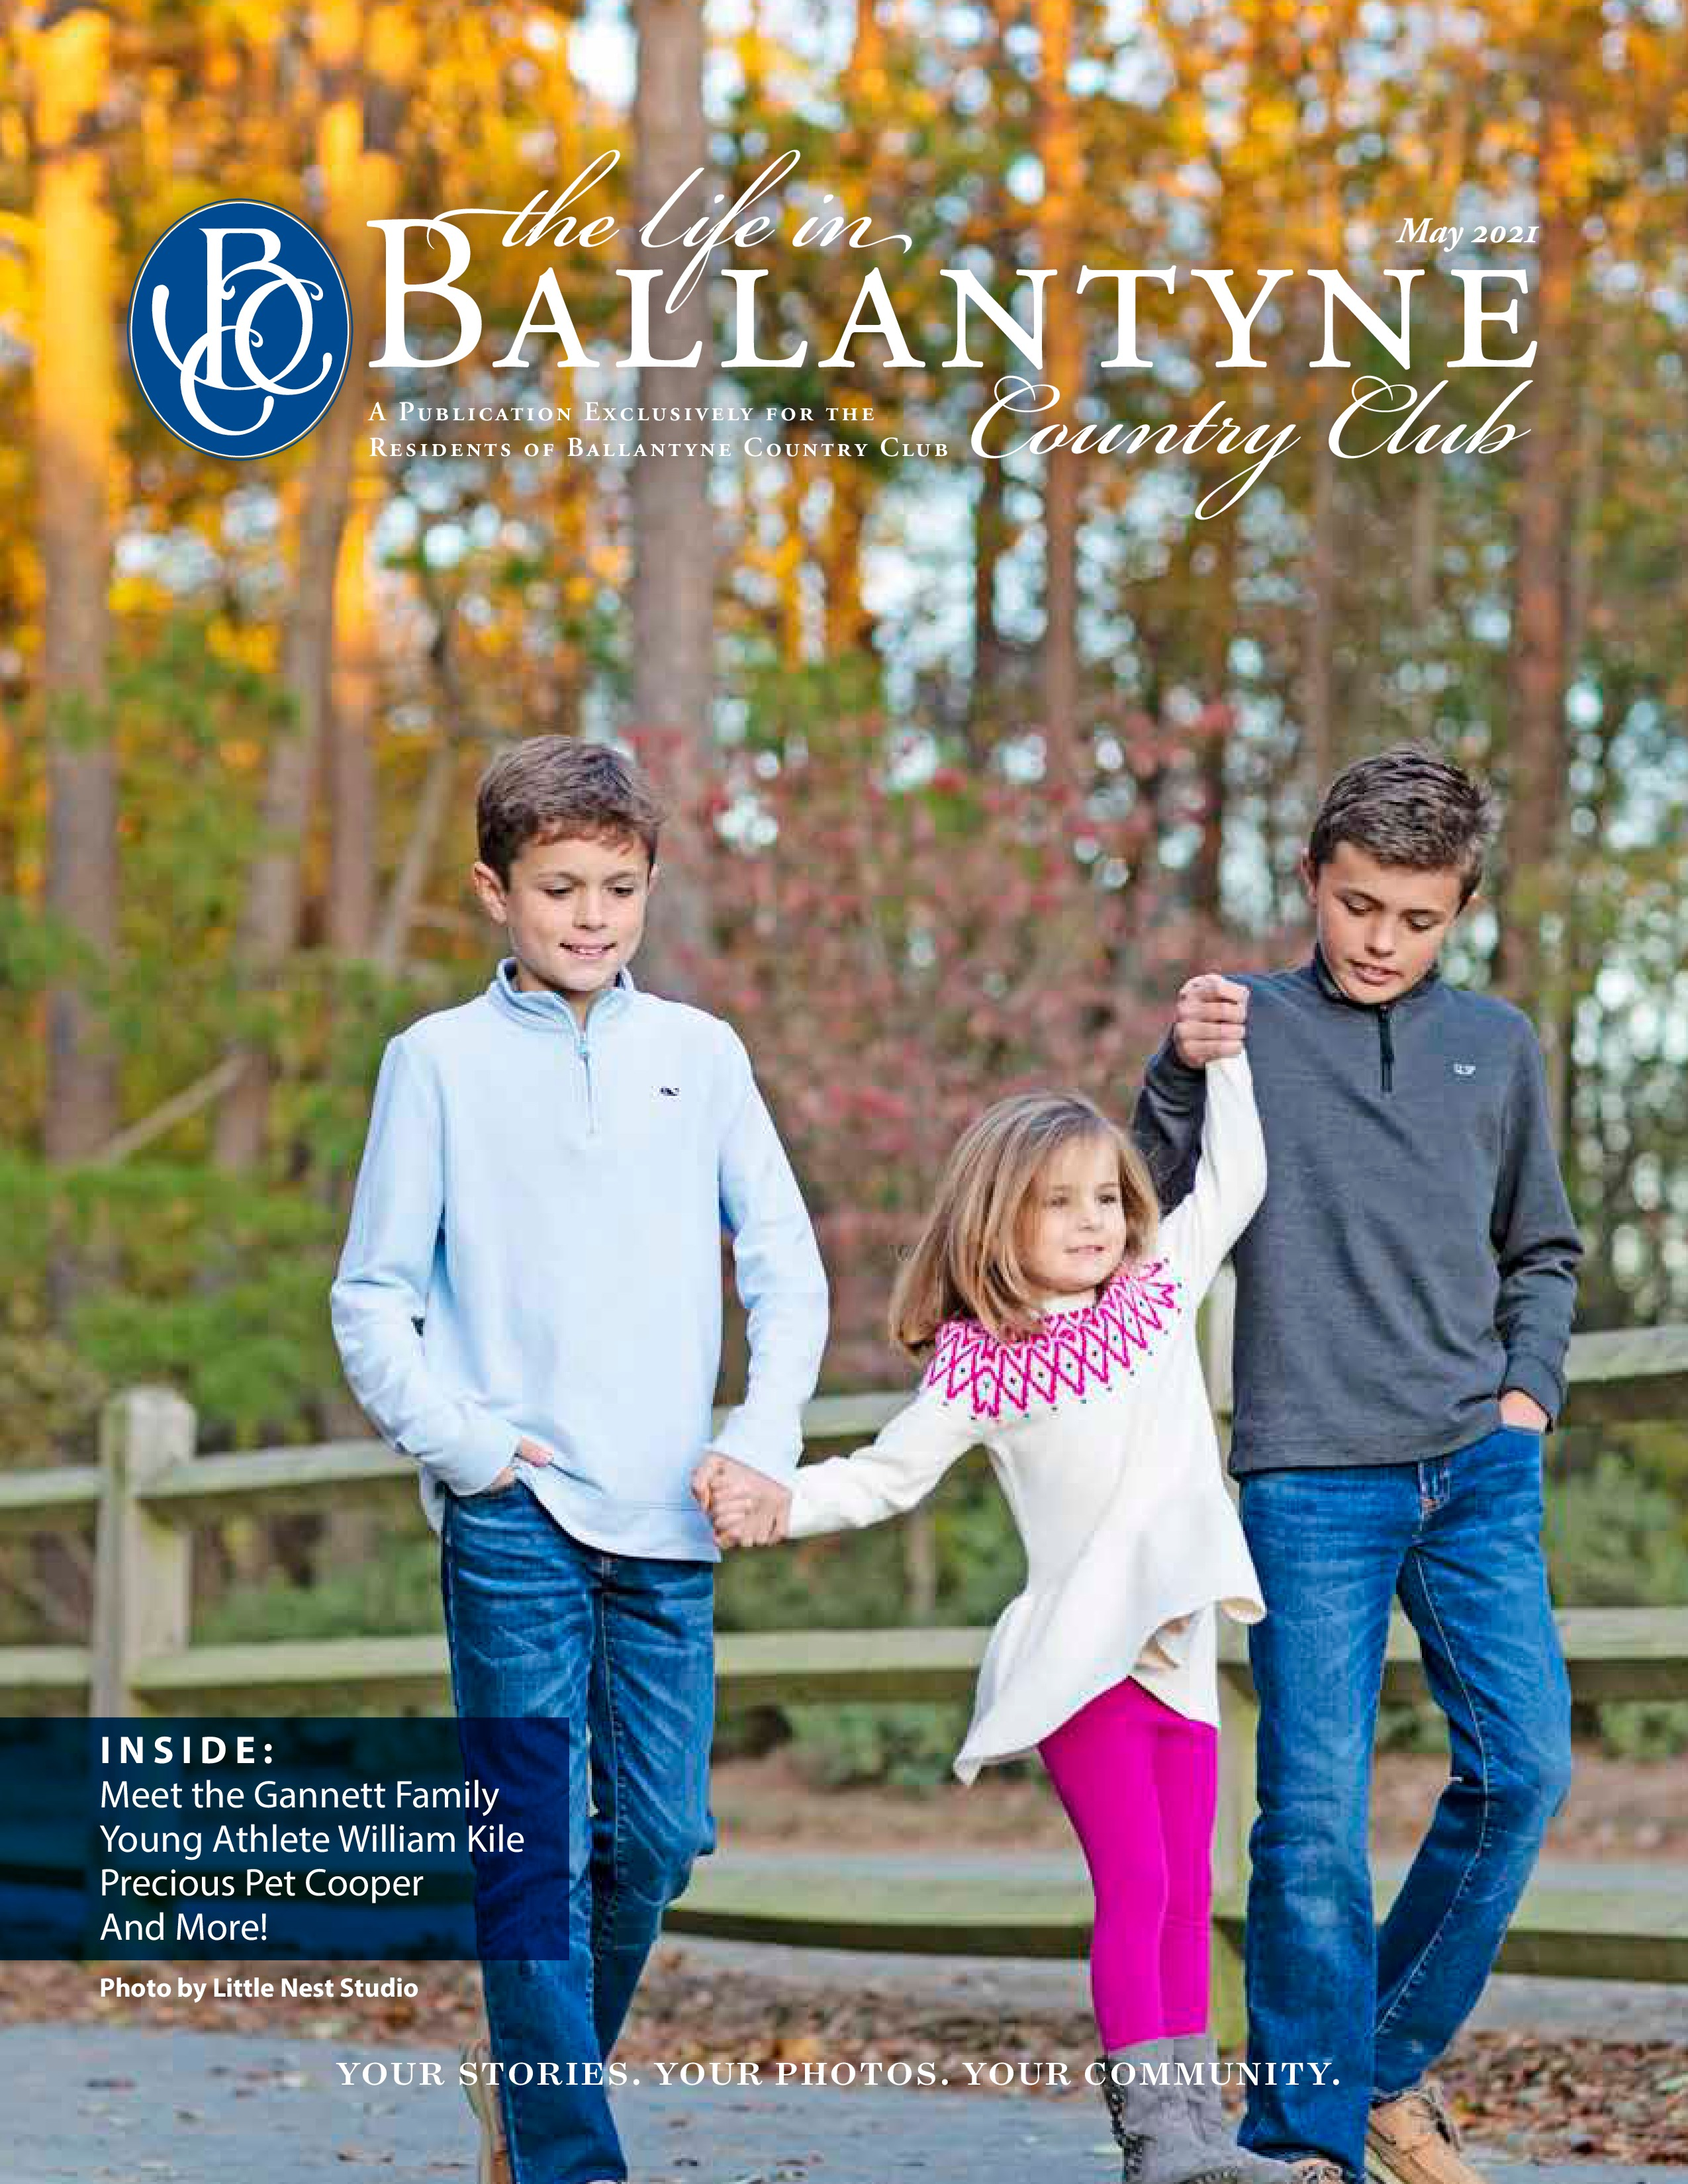 The Life in Ballantyne Country Club 2021-05-01